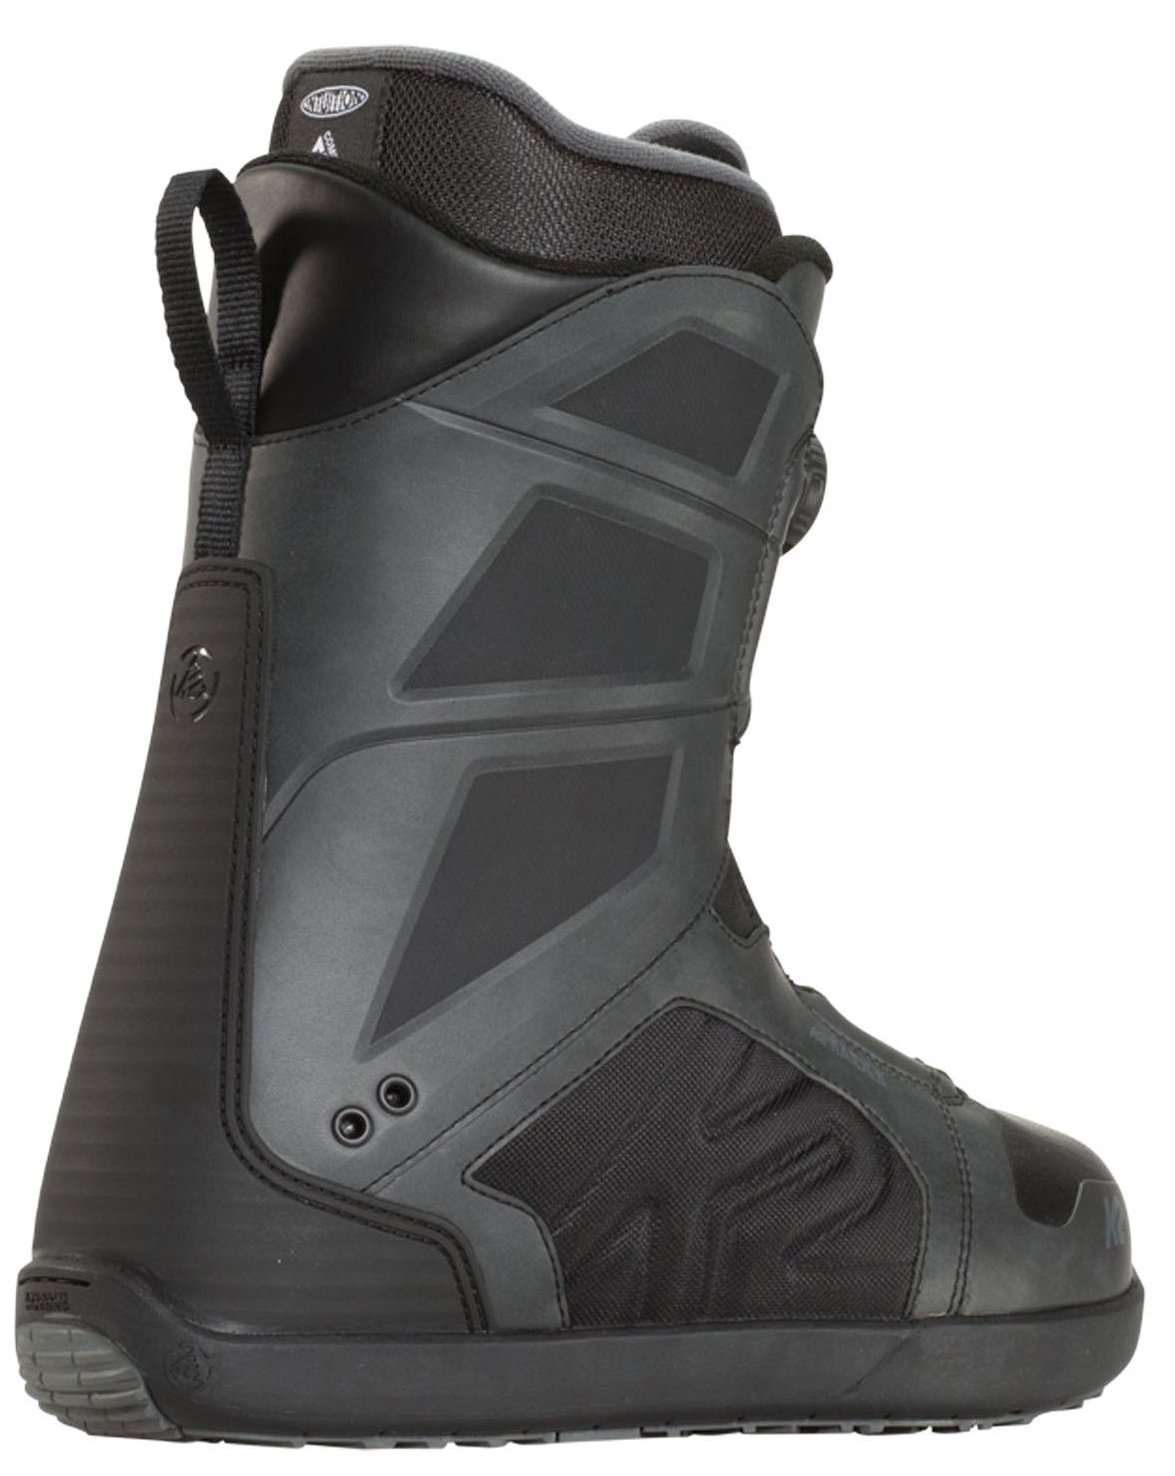 K2 Raider Men's Snowboard Boot 2019